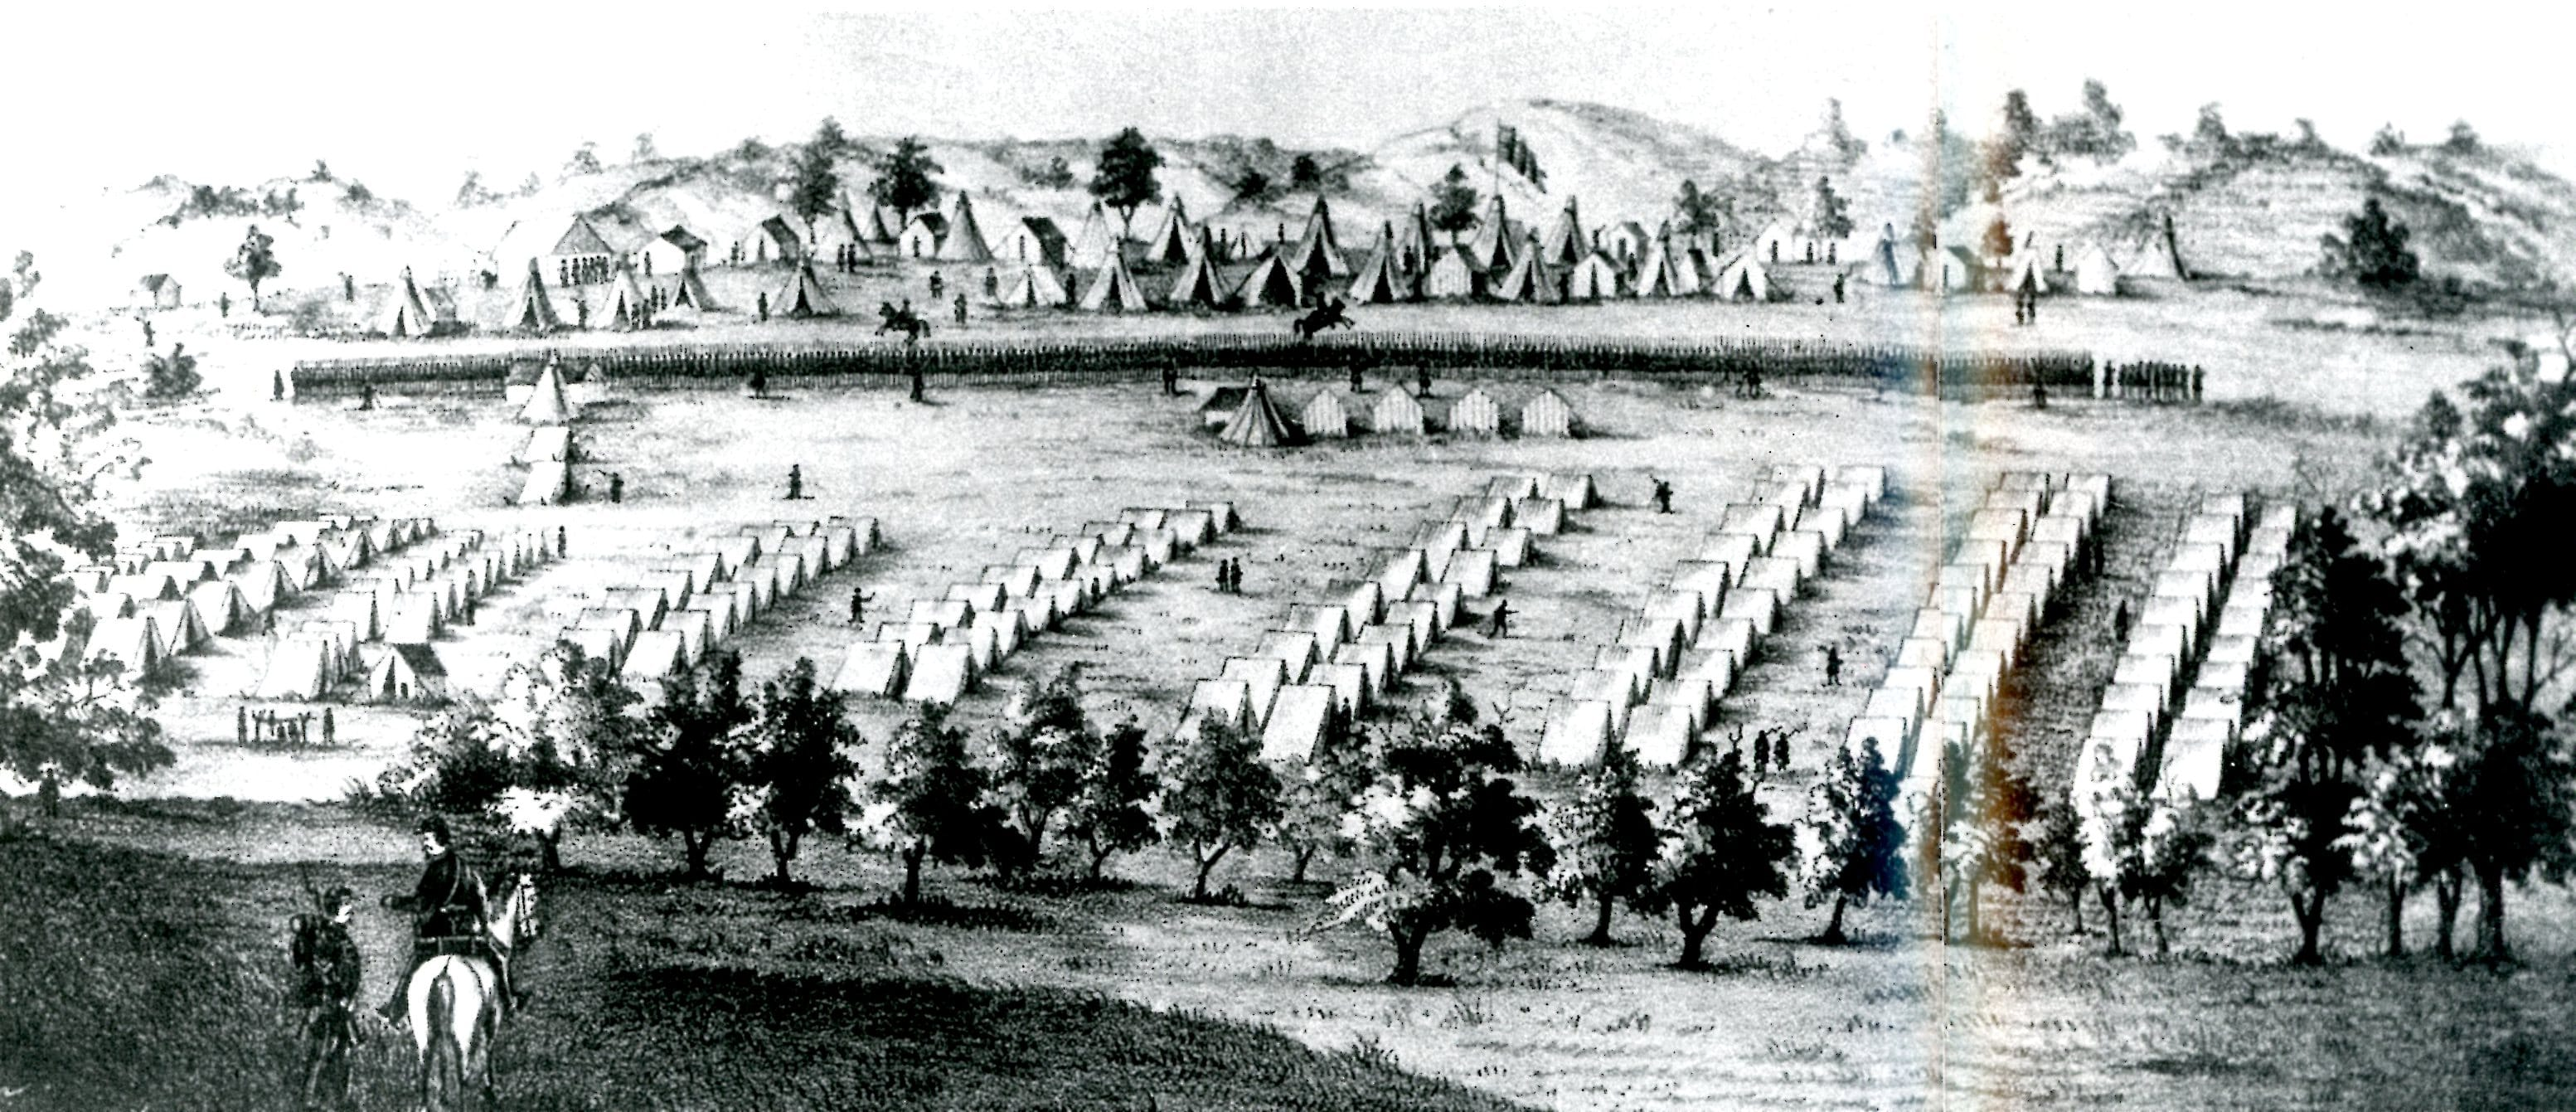 Holding the High Ground: Fort Reno in War & Peace